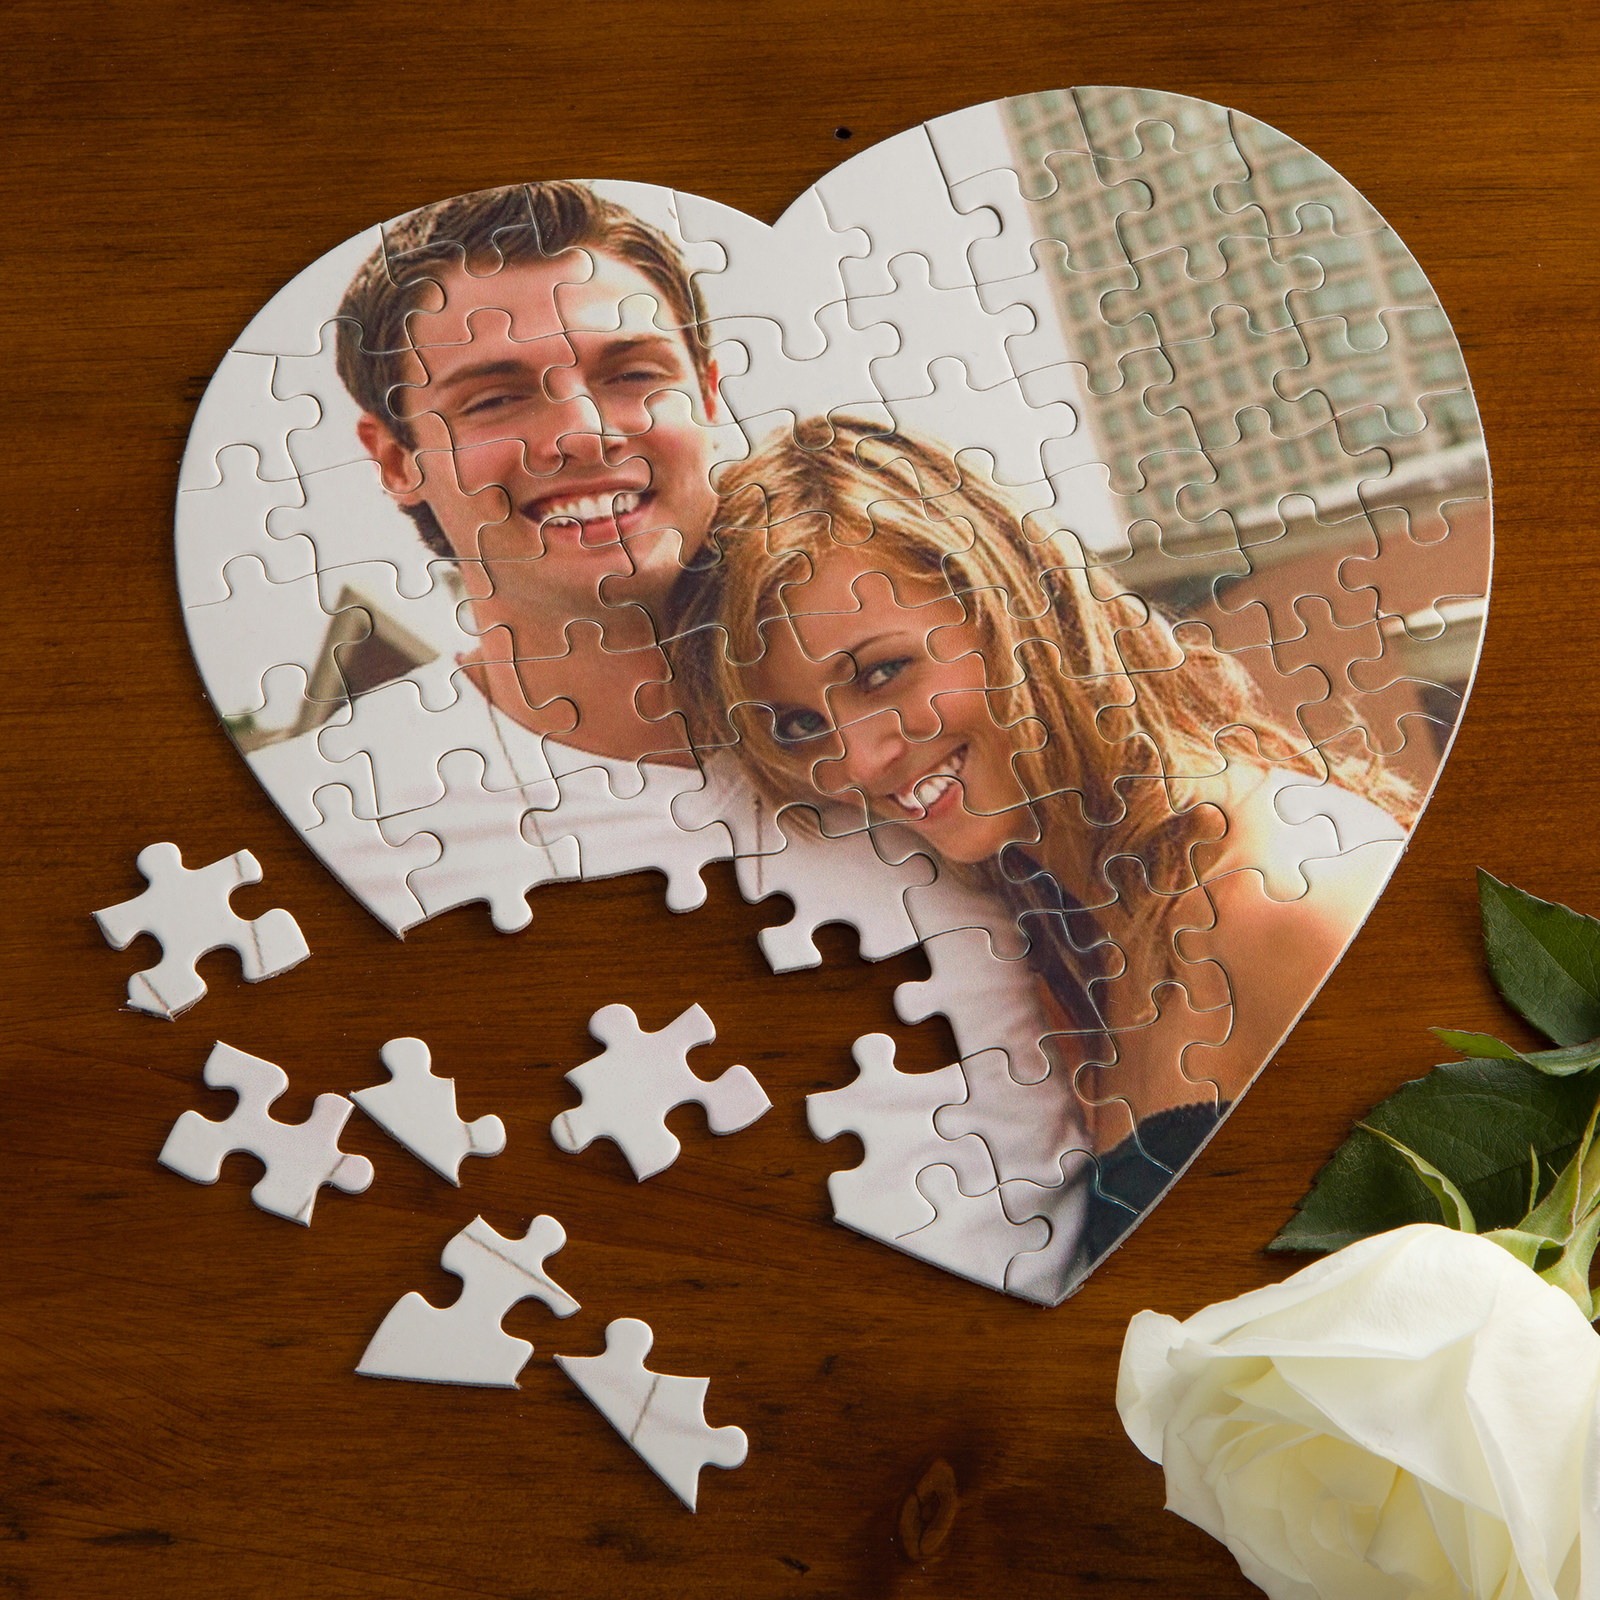 A photo of a smiling couple is printed on a half-completed heat-shaped puzzle on a wooden table next to a white rose .